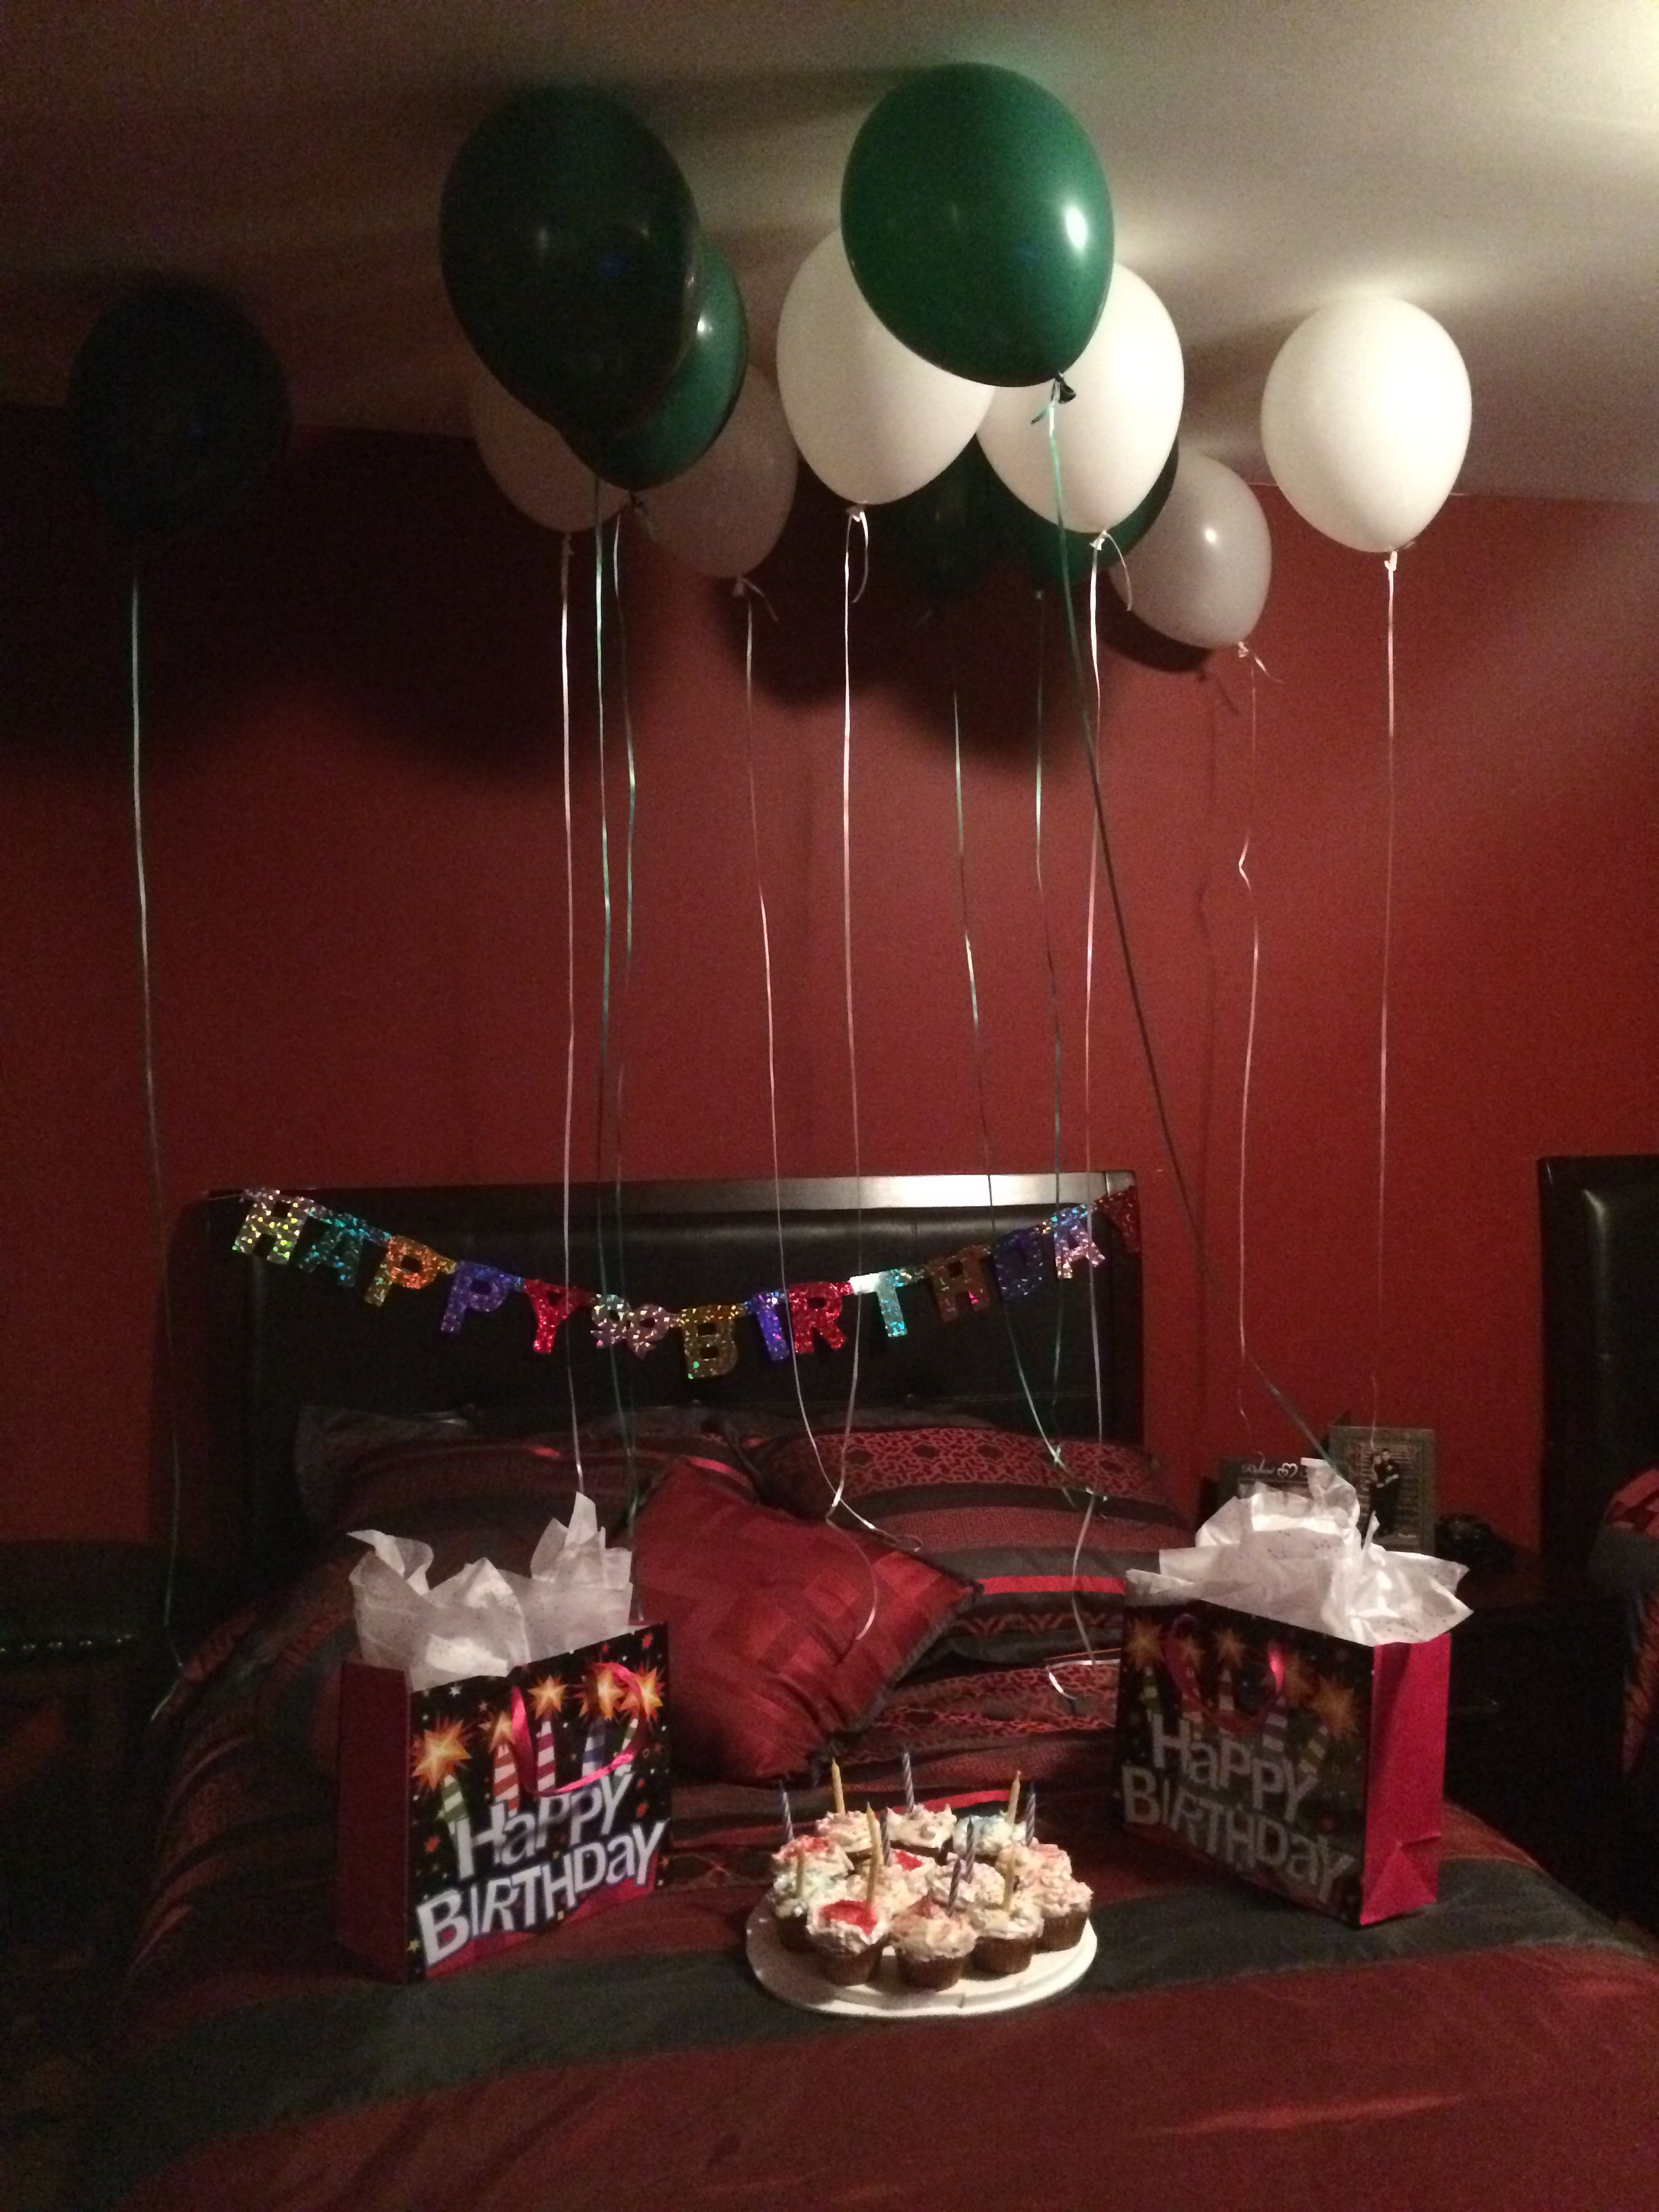 Made cupcakes, got balloons and his presents to use them